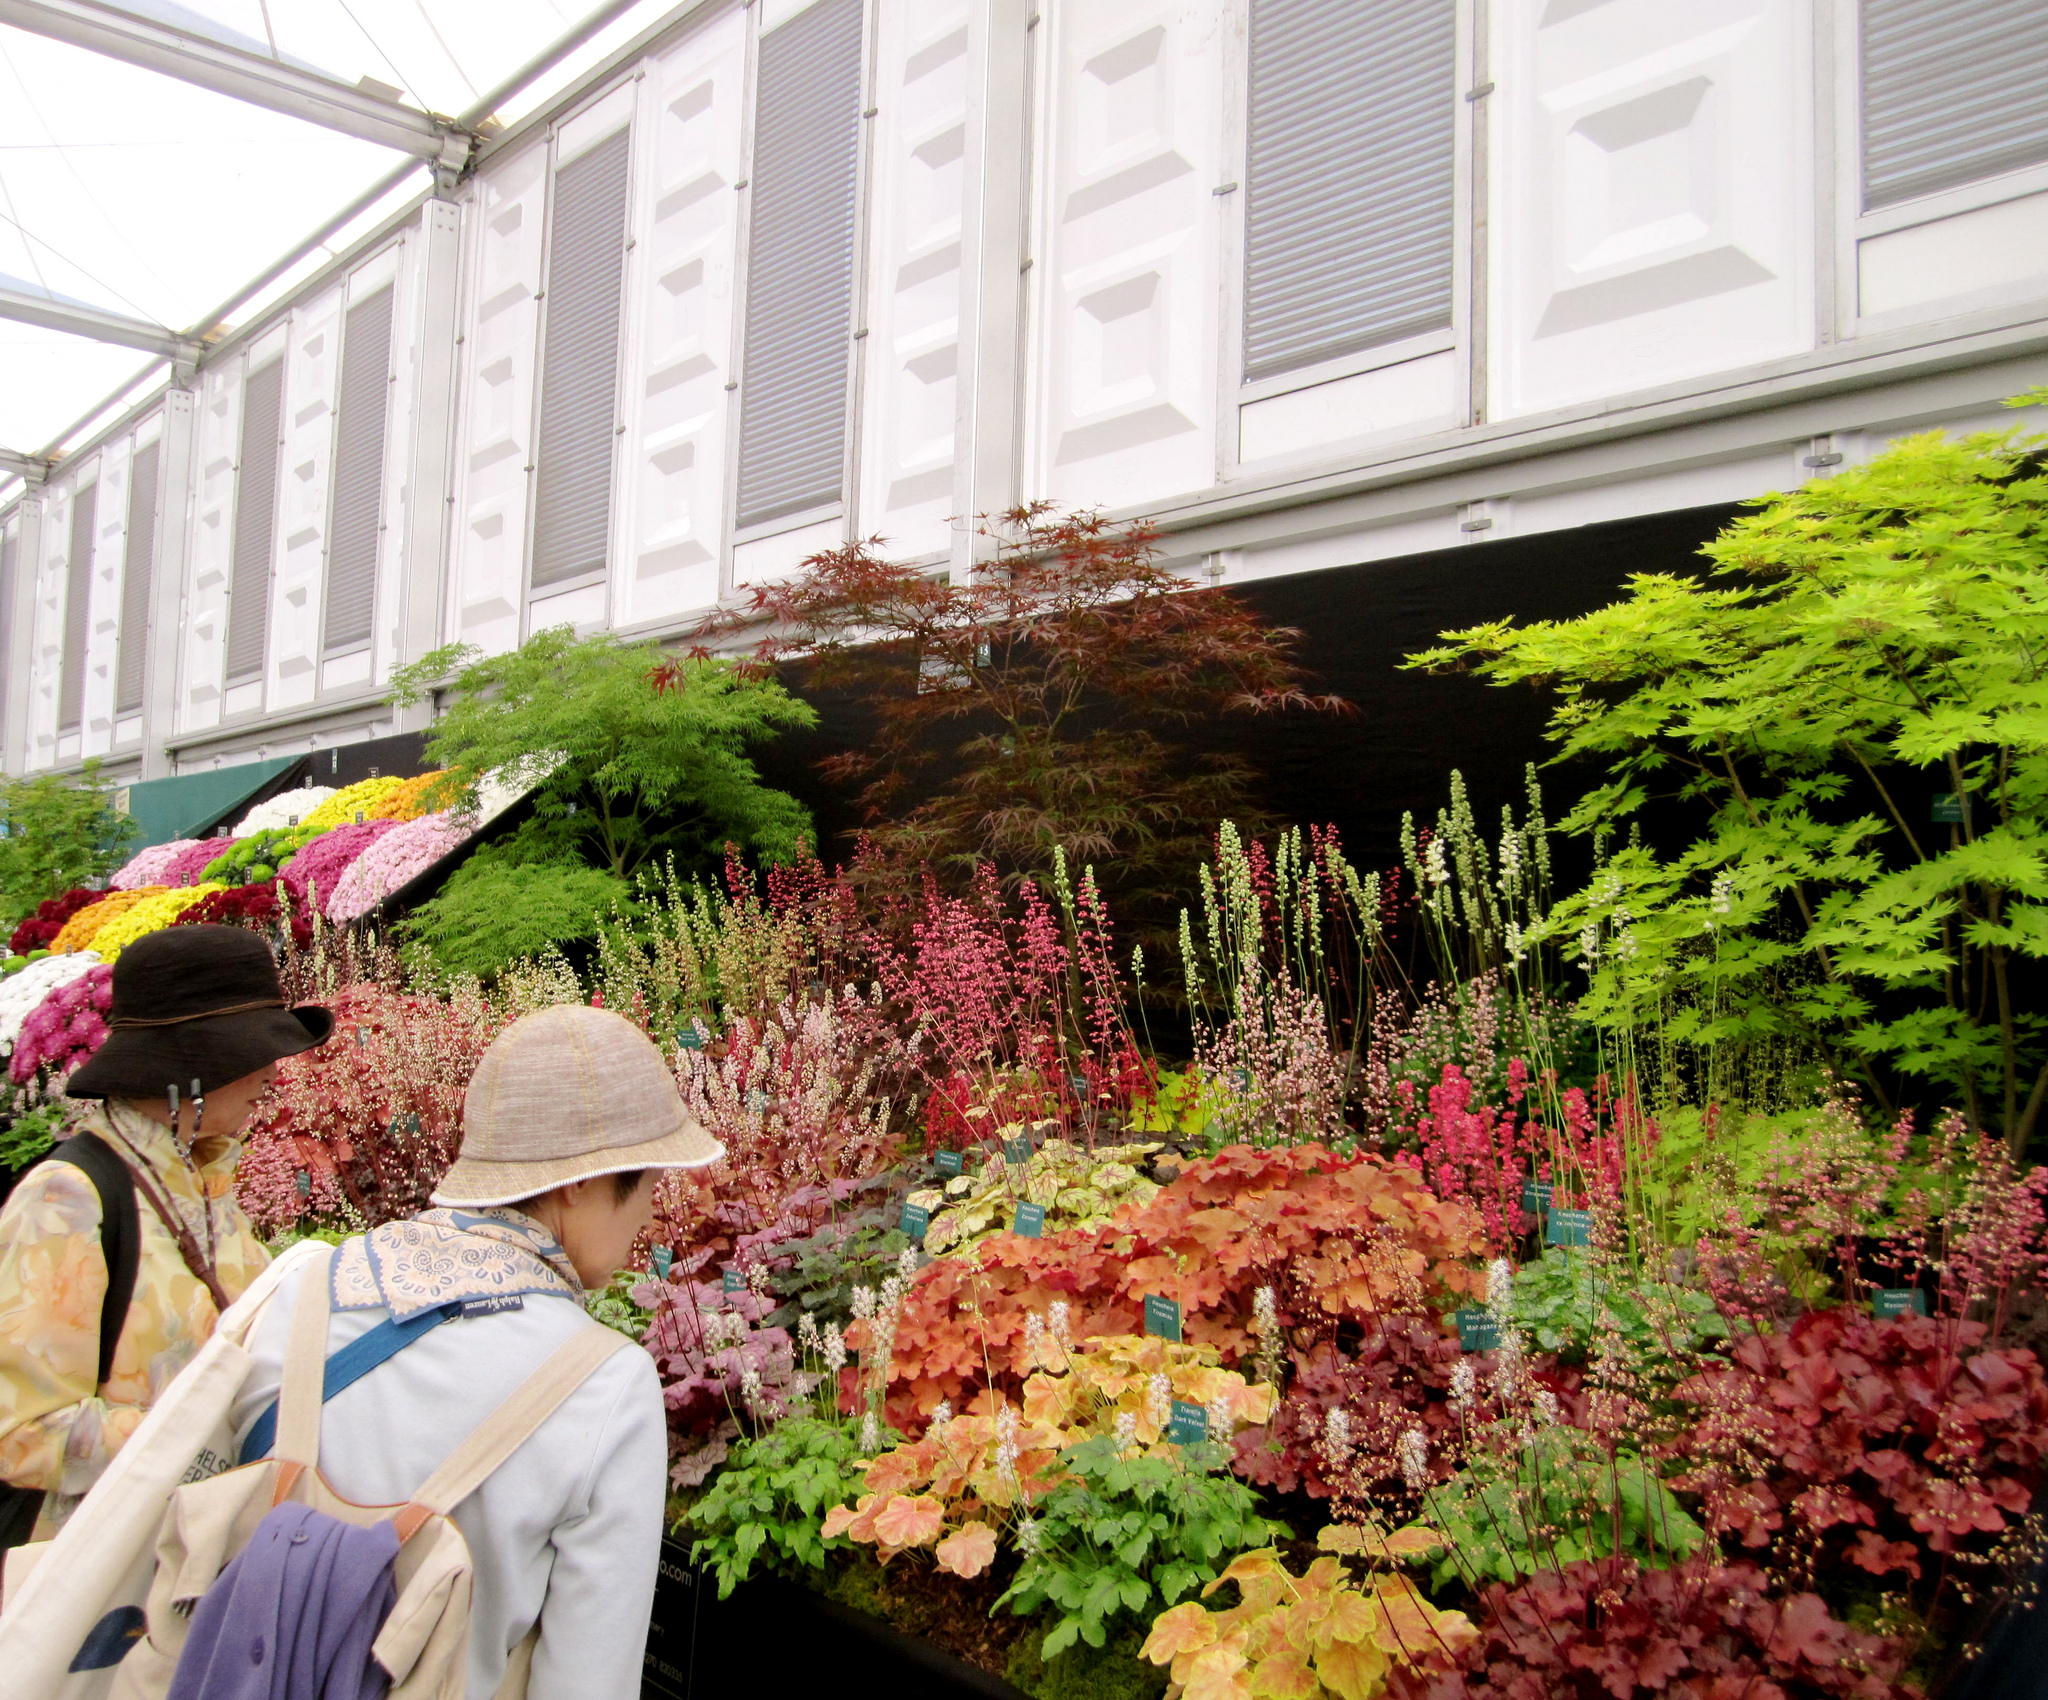 A swath of Heuchera cultivars on display; photo courtesy of Flickr cc/La Citta Vita